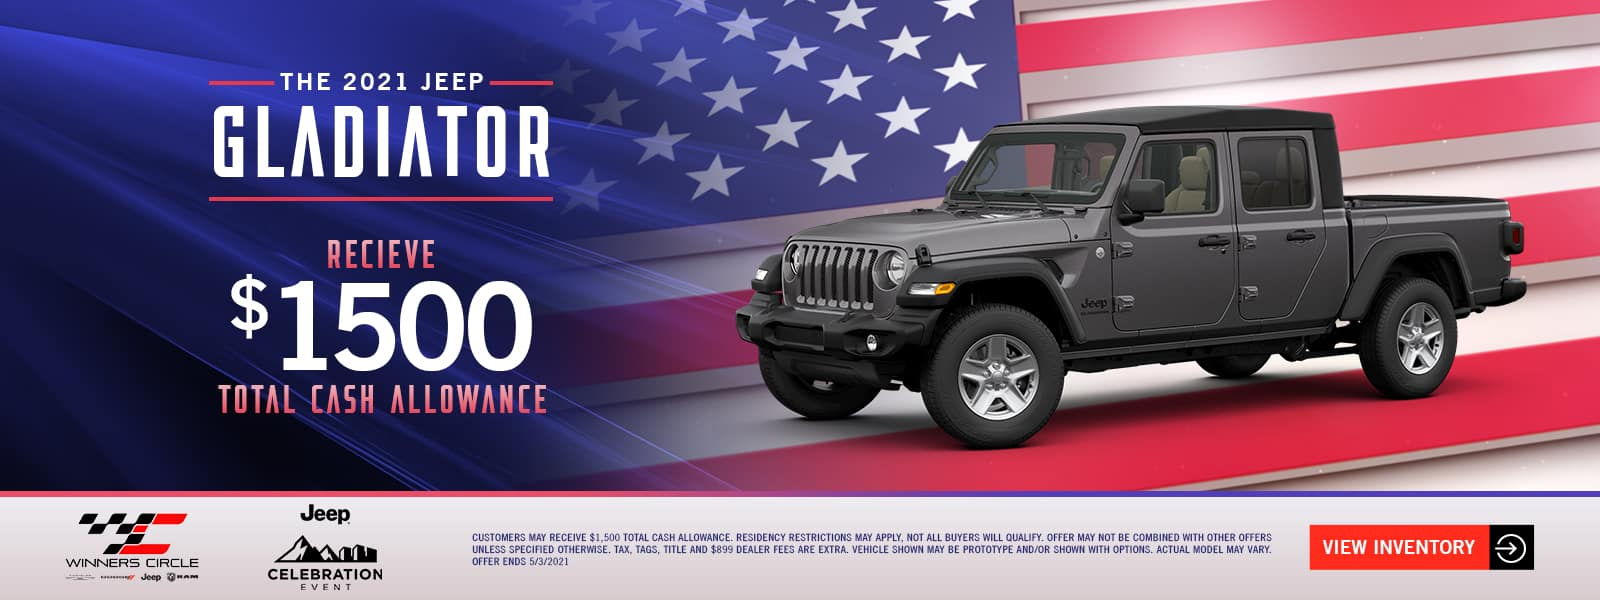 The 2021 Jeep Gladiator - receive $1,500 total cash allowance!